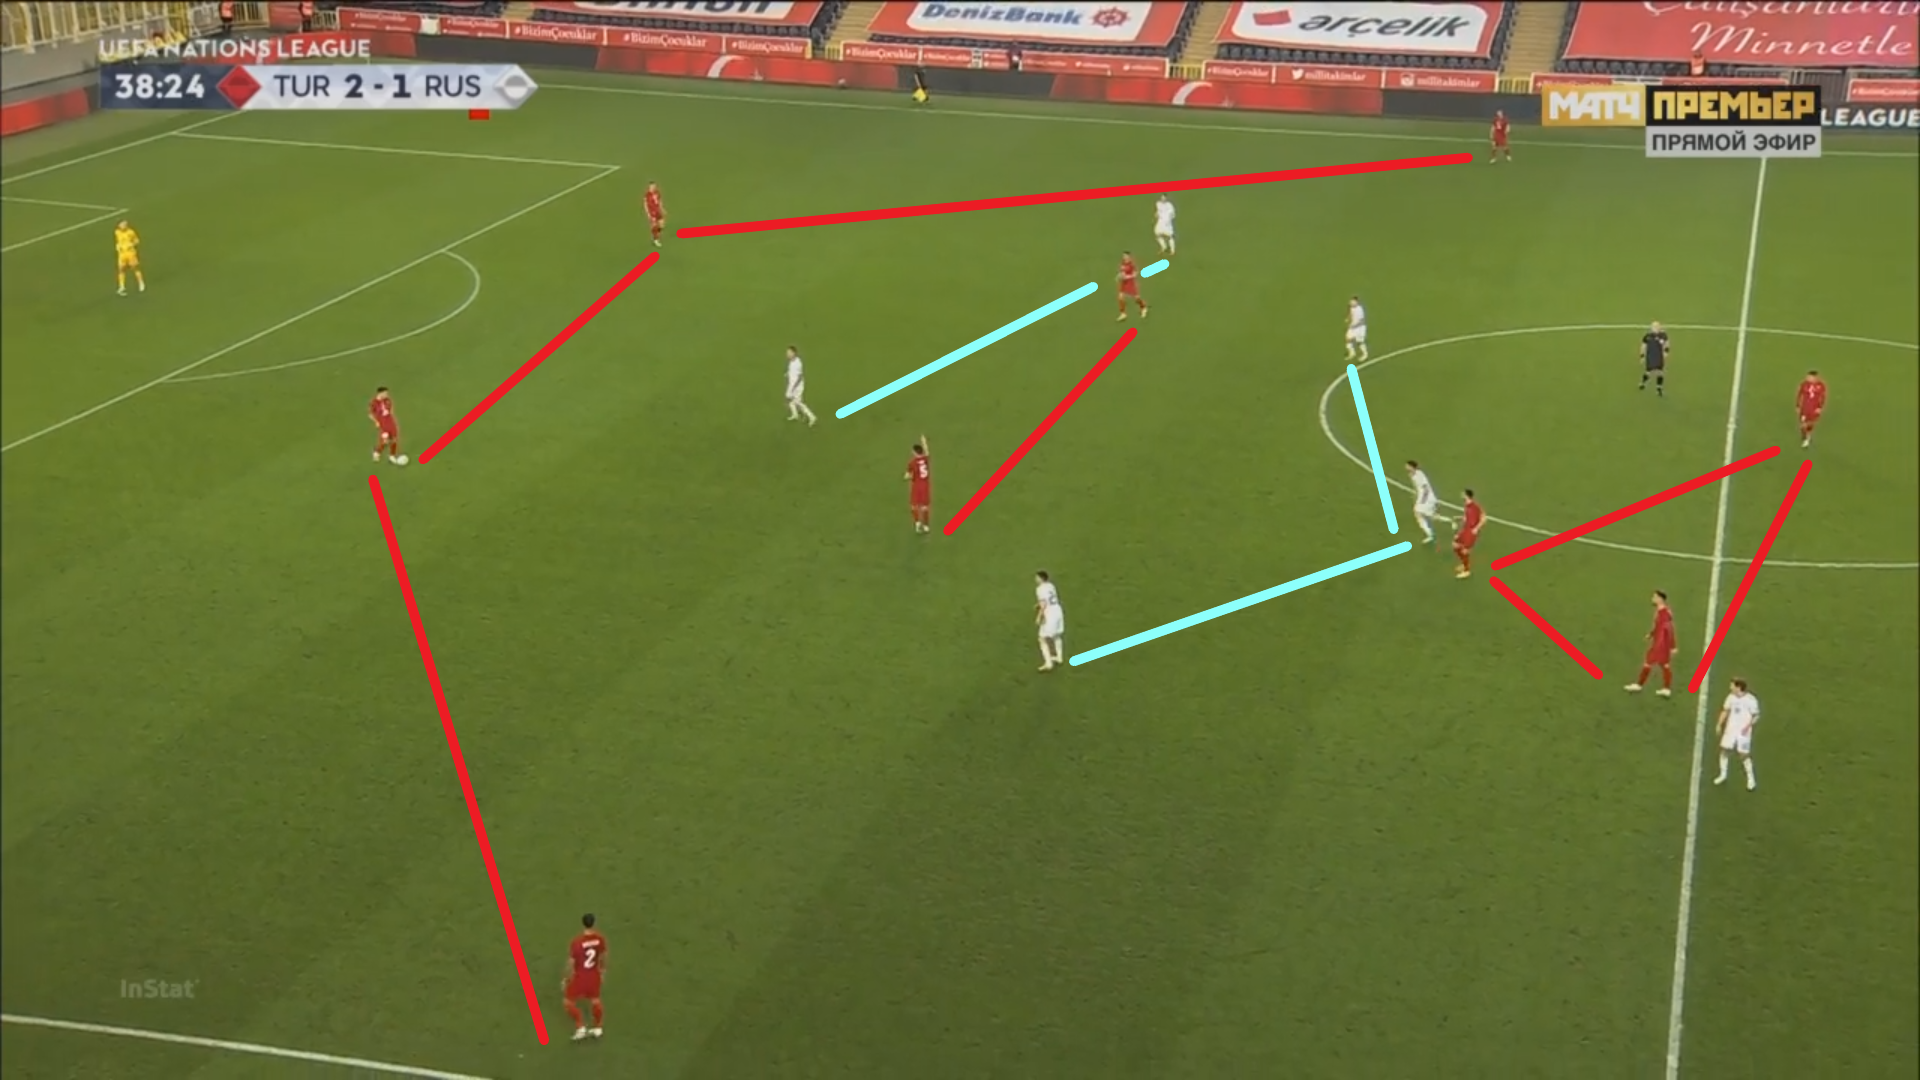 UEFA Nations League 2020/21: Turkey vs Russia - tactical analysis - tactics